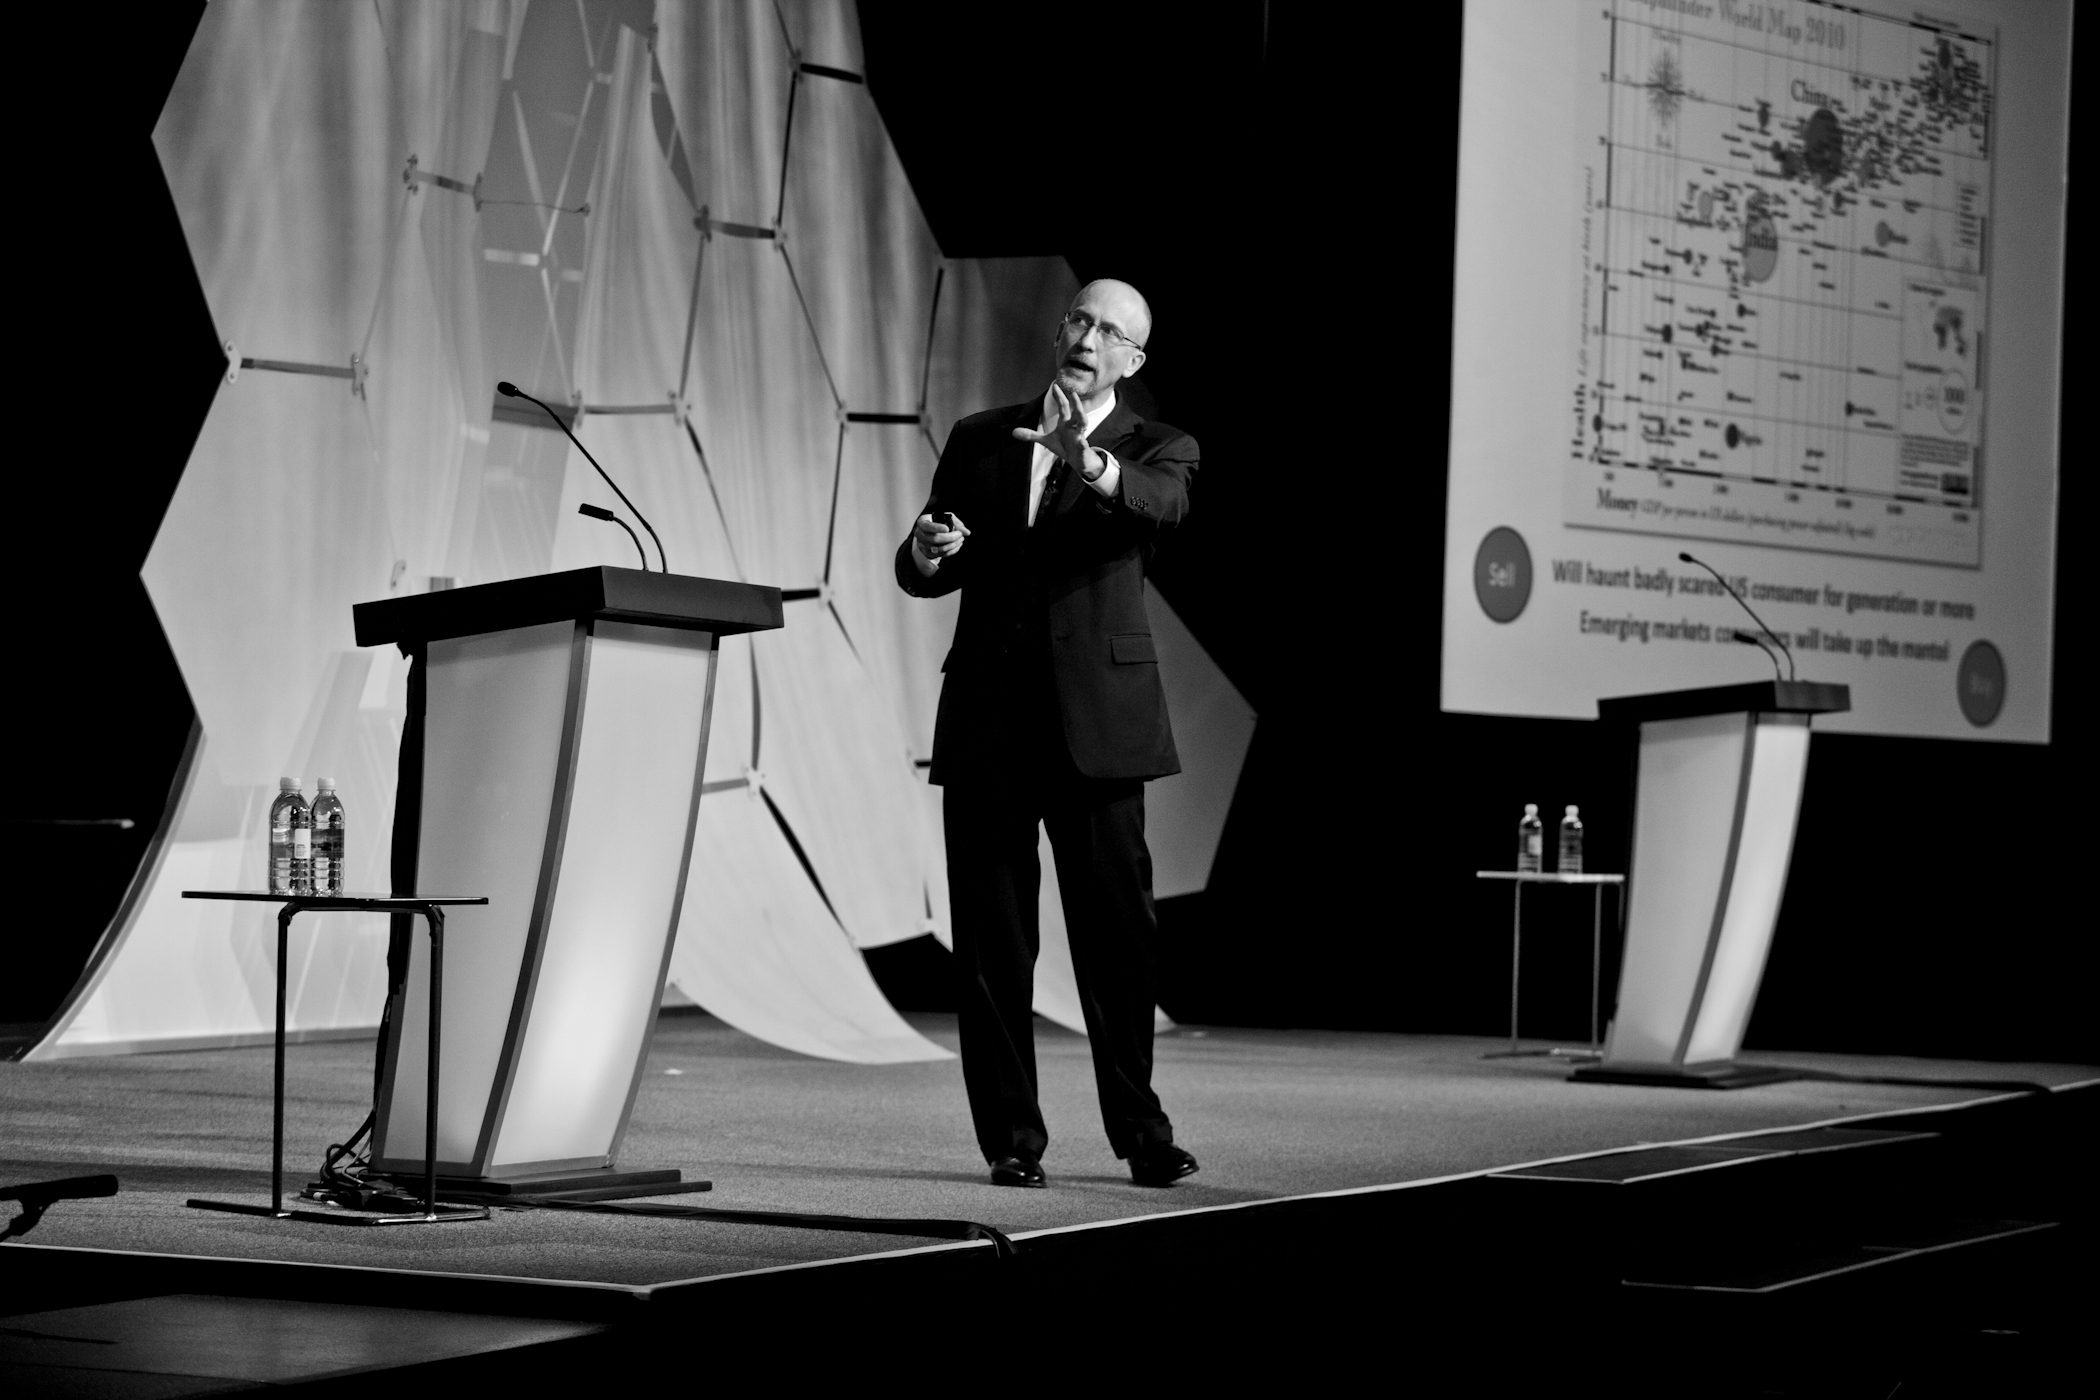 Keith Fitz-Gerald Speaking on a stage at a seminar